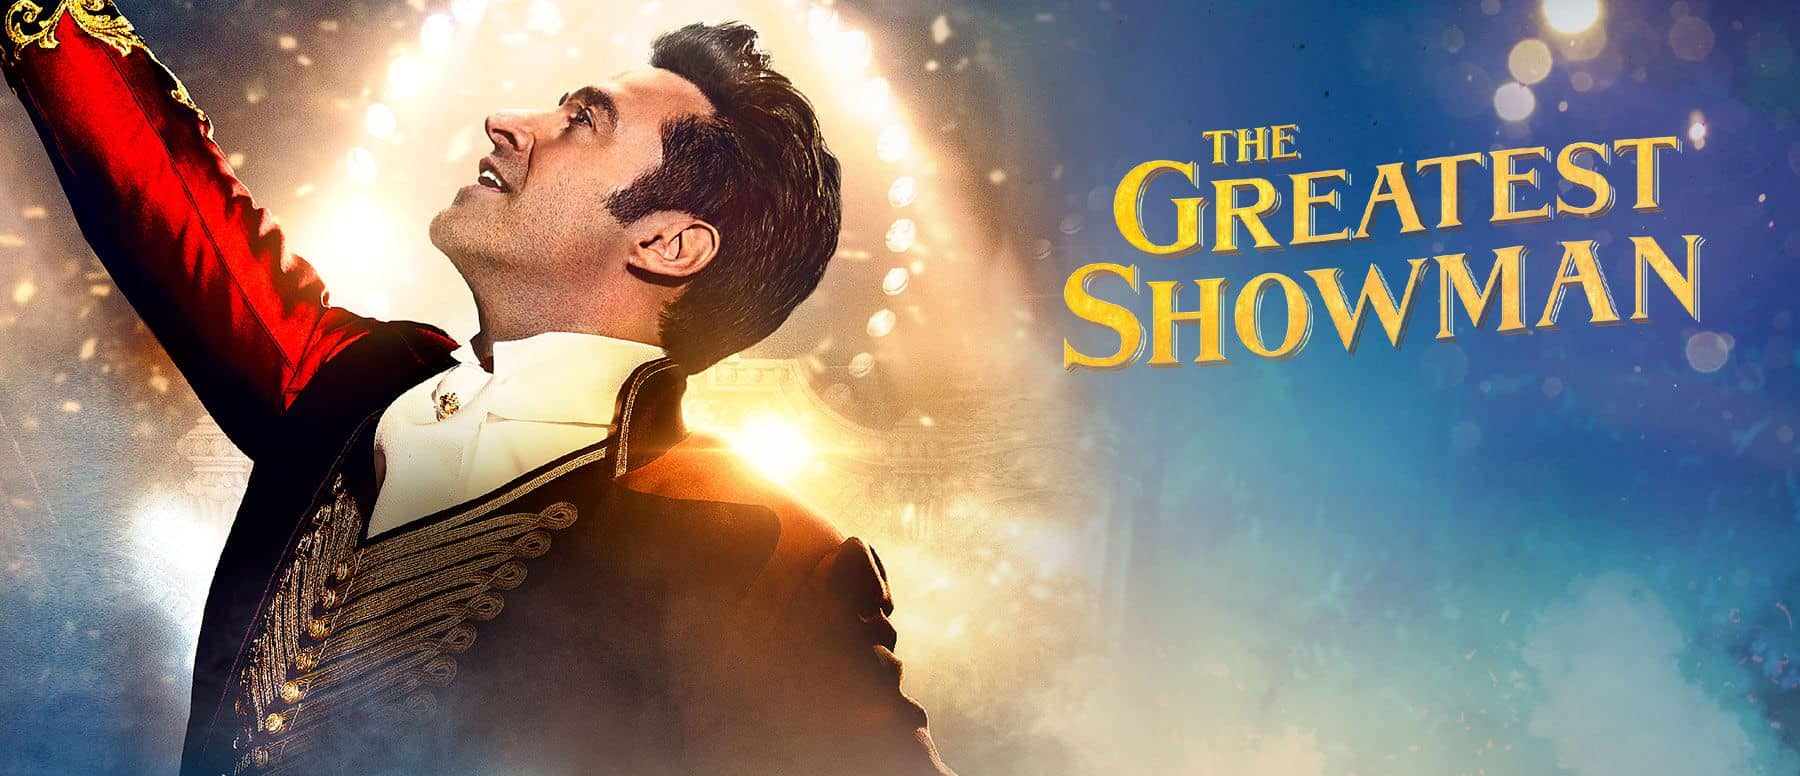 amazon The Greatest Showman reviews The Greatest Showman on amazon newest The Greatest Showman prices of The Greatest Showman The Greatest Showman deals best deals on The Greatest Showman buying a The Greatest Showman lastest The Greatest Showman what is a The Greatest Showman The Greatest Showman at amazon where to buy The Greatest Showman where can i you get a The Greatest Showman online purchase The Greatest Showman The Greatest Showman sale off The Greatest Showman discount cheapest The Greatest Showman The Greatest Showman for sale The Greatest Showman products The Greatest Showman tutorial The Greatest Showman specification The Greatest Showman features The Greatest Showman test The Greatest Showman series The Greatest Showman service manual The Greatest Showman instructions The Greatest Showman accessories a the greatest showman the greatest showman in tennis has a new act winning is the greatest showman a true story i'm not a stranger to the dark the greatest showman a million dreams the greatest showman i am not a stranger to the dark the greatest showman is the greatest showman a book is the greatest showman a musical e the greatest showman h the greatest showman id the greatest showman on netflix id the greatest showman a true story look out cause here i come the greatest showman l the greatest showman m the greatest showman p.t. barnum the greatest showman r the greatest showman s the greatest showman s the greatest showman a true story the greatest showman online s prijevodom the greatest showman the greatest showman ost the greatest showman vietsub the greatest showman (2017) the greatest showman imdb the greatest showman full the greatest showman vungtv the greatest showman cast the greatest showman engsub the greatest showman wiki the greatest showman v kinech the greatest showman premiera w polsce 1 the greatest showman the greatest showman trailer 1 2 the greatest showman 2 the greatest showman (2017) the greatest showman trailer 2 the greatest showman trailer 2 reaction the greatest showman official trailer 2 the greatest showman trailer 2 song the greatest showman trailer 3 4 the greatest showman 4 the greatest showman by todrick hall lyrics the e greatest showman their greatest showman their greatest showman soundtrack is the greatest showman rated r the greatest showman r the greatest showman t